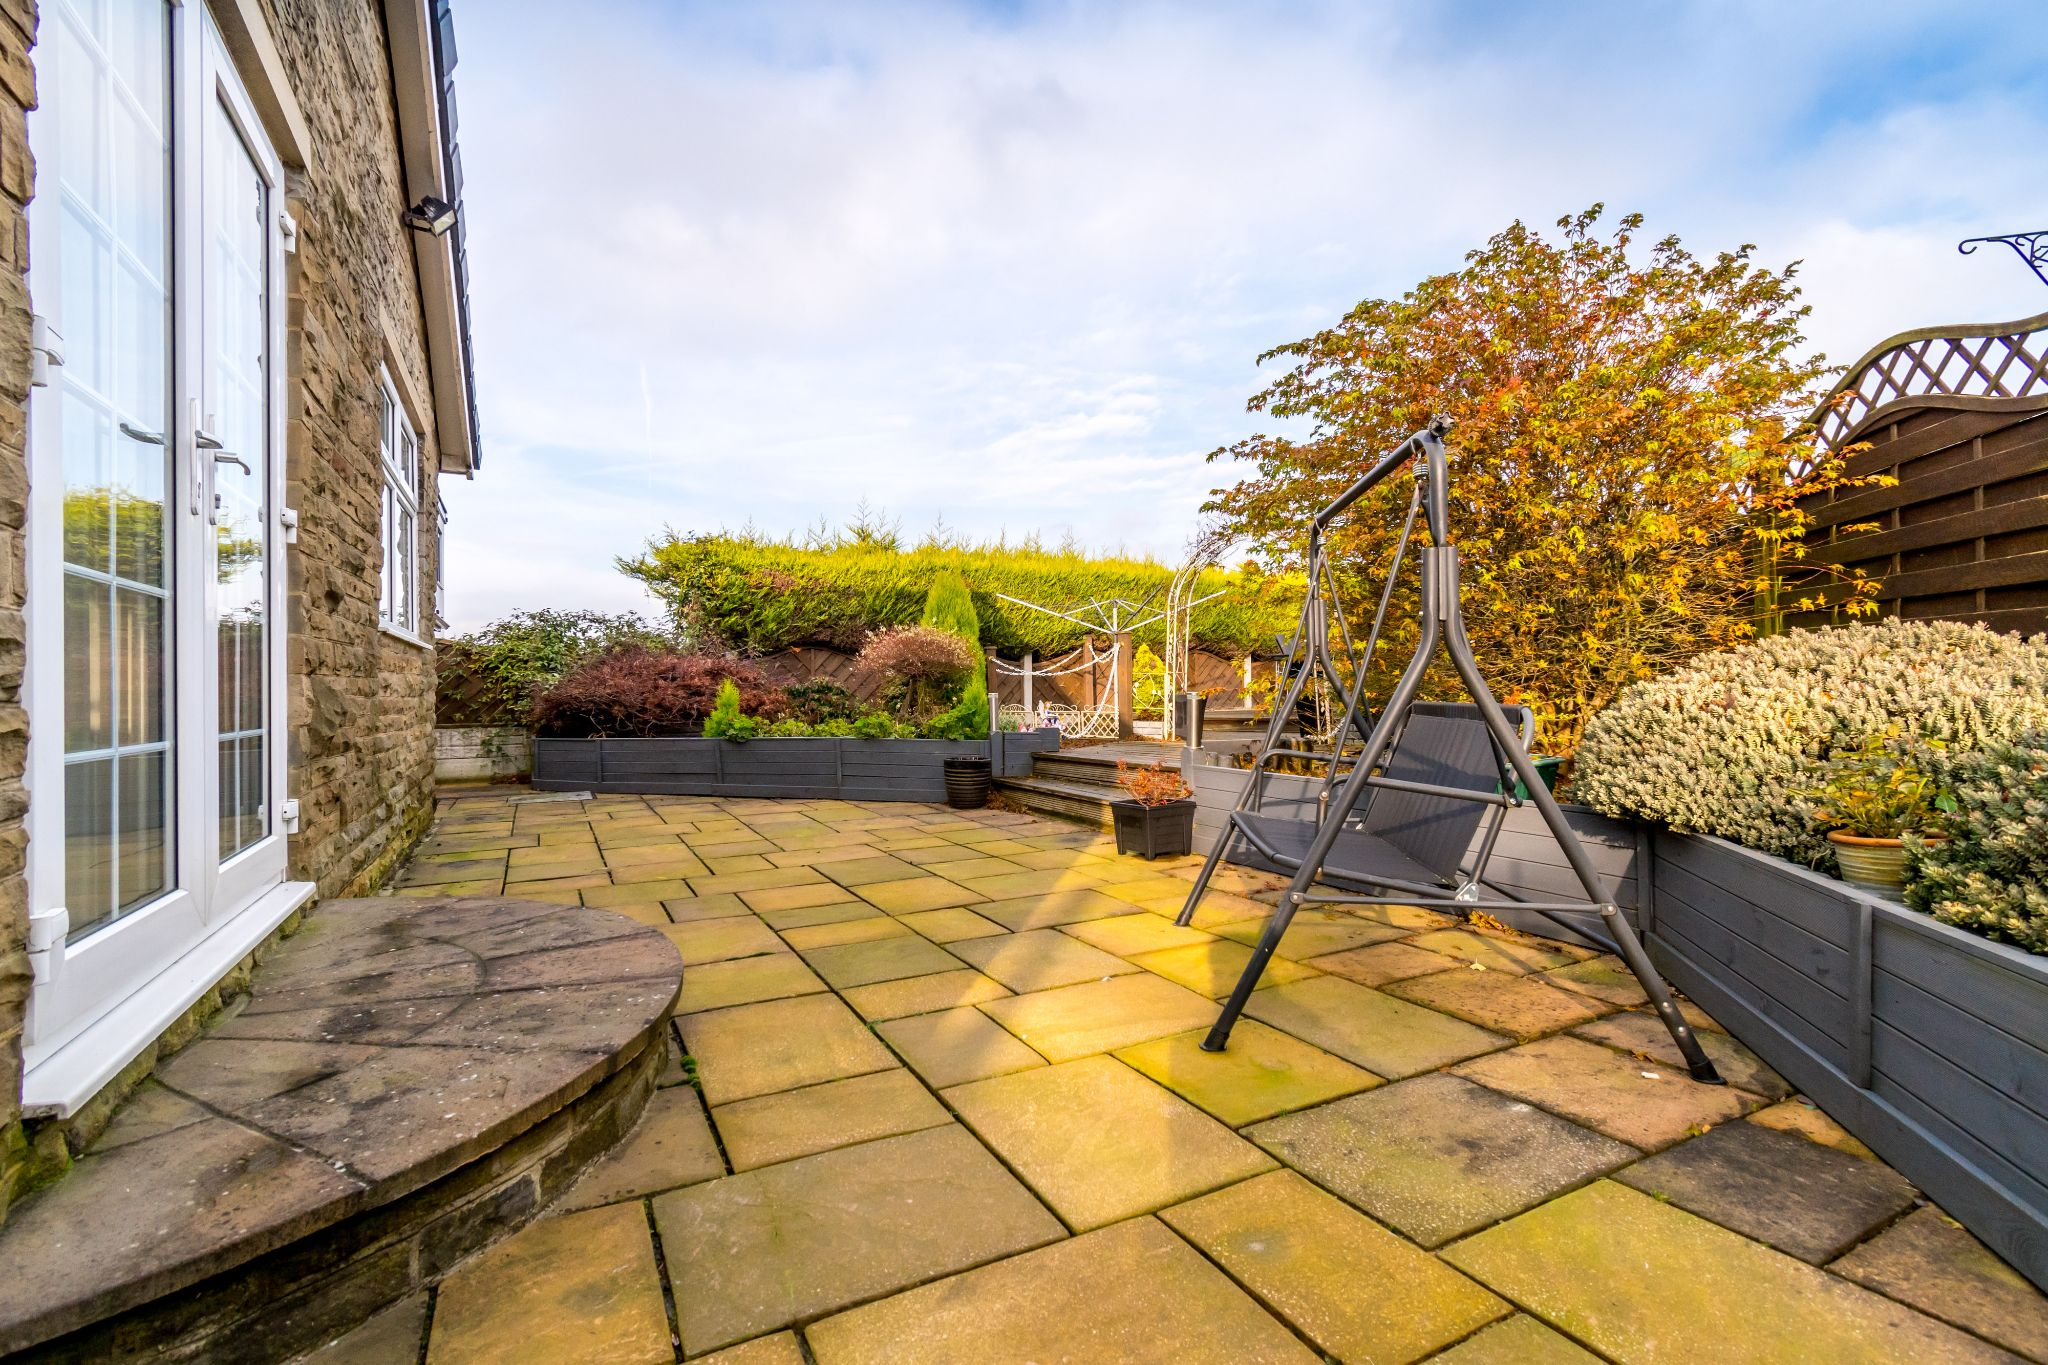 3 bedroom detached bungalow For Sale in Hove Edge - Rear patio